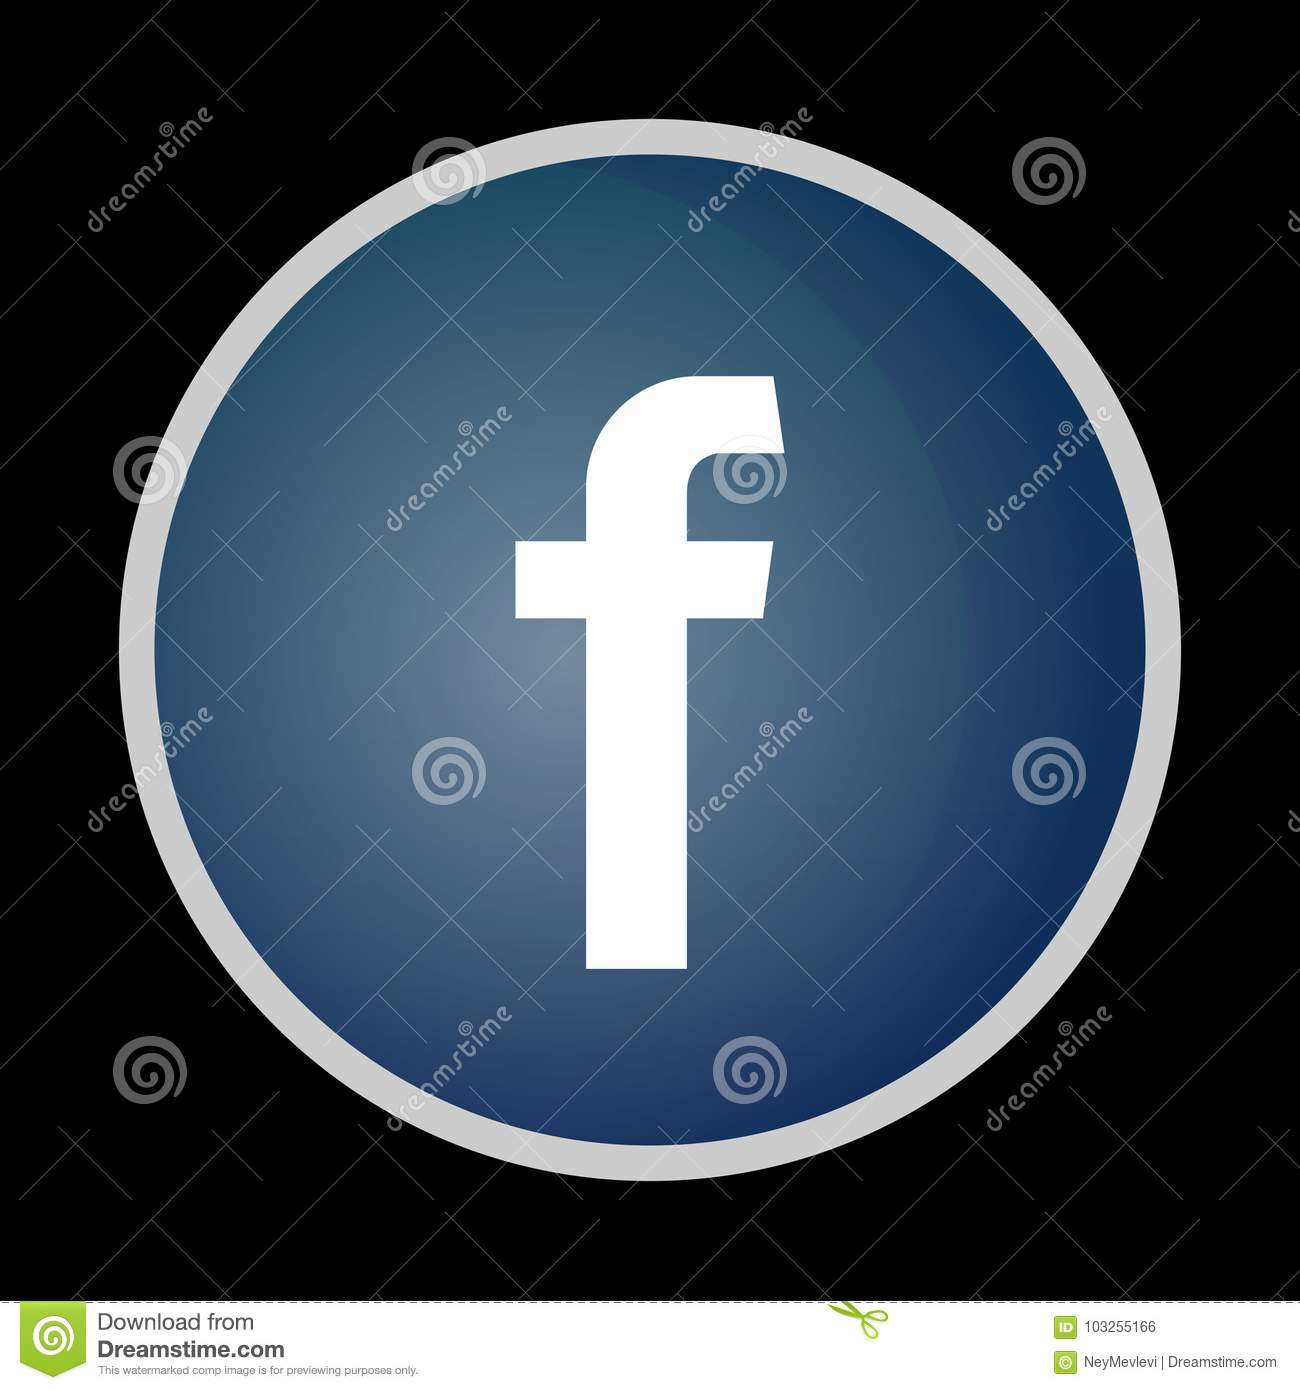 Facebook iconsymbolthumbnailbutton black isolated editorial photo facebook iconsymbolthumbnailbutton black isolated buycottarizona Image collections